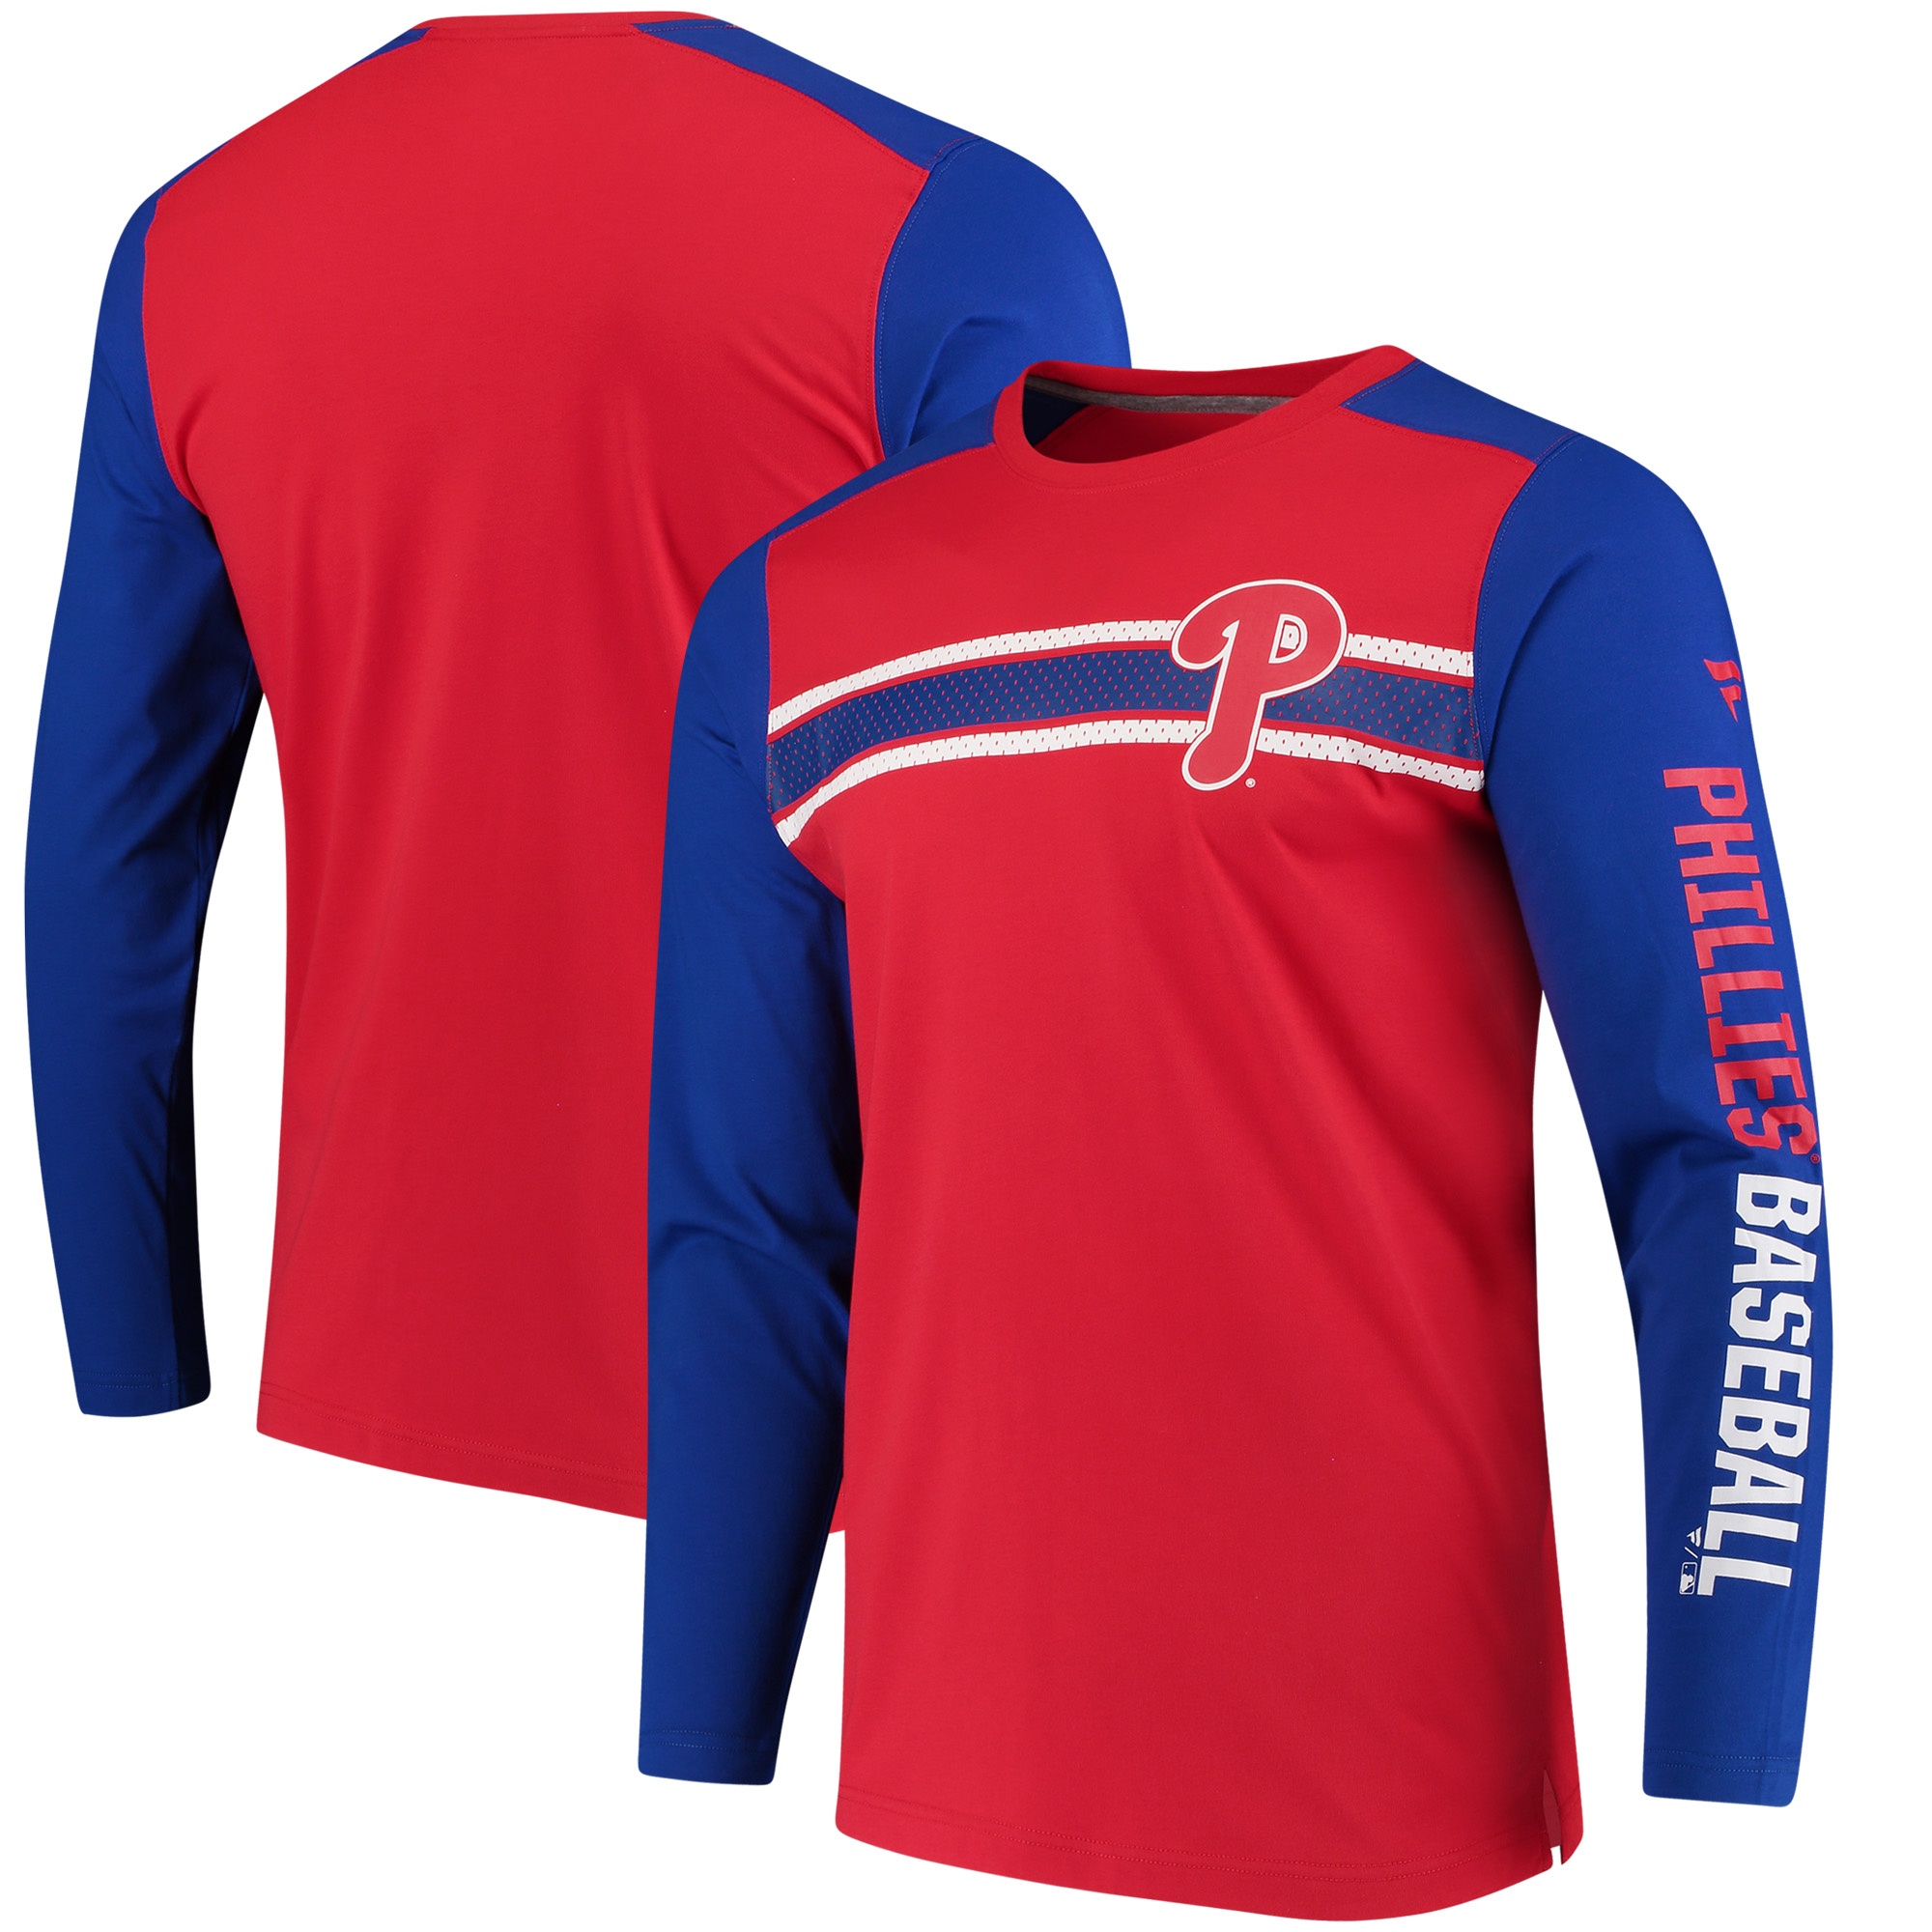 Philadelphia Phillies Fanatics Branded Iconic Long Sleeve T-Shirt - Red